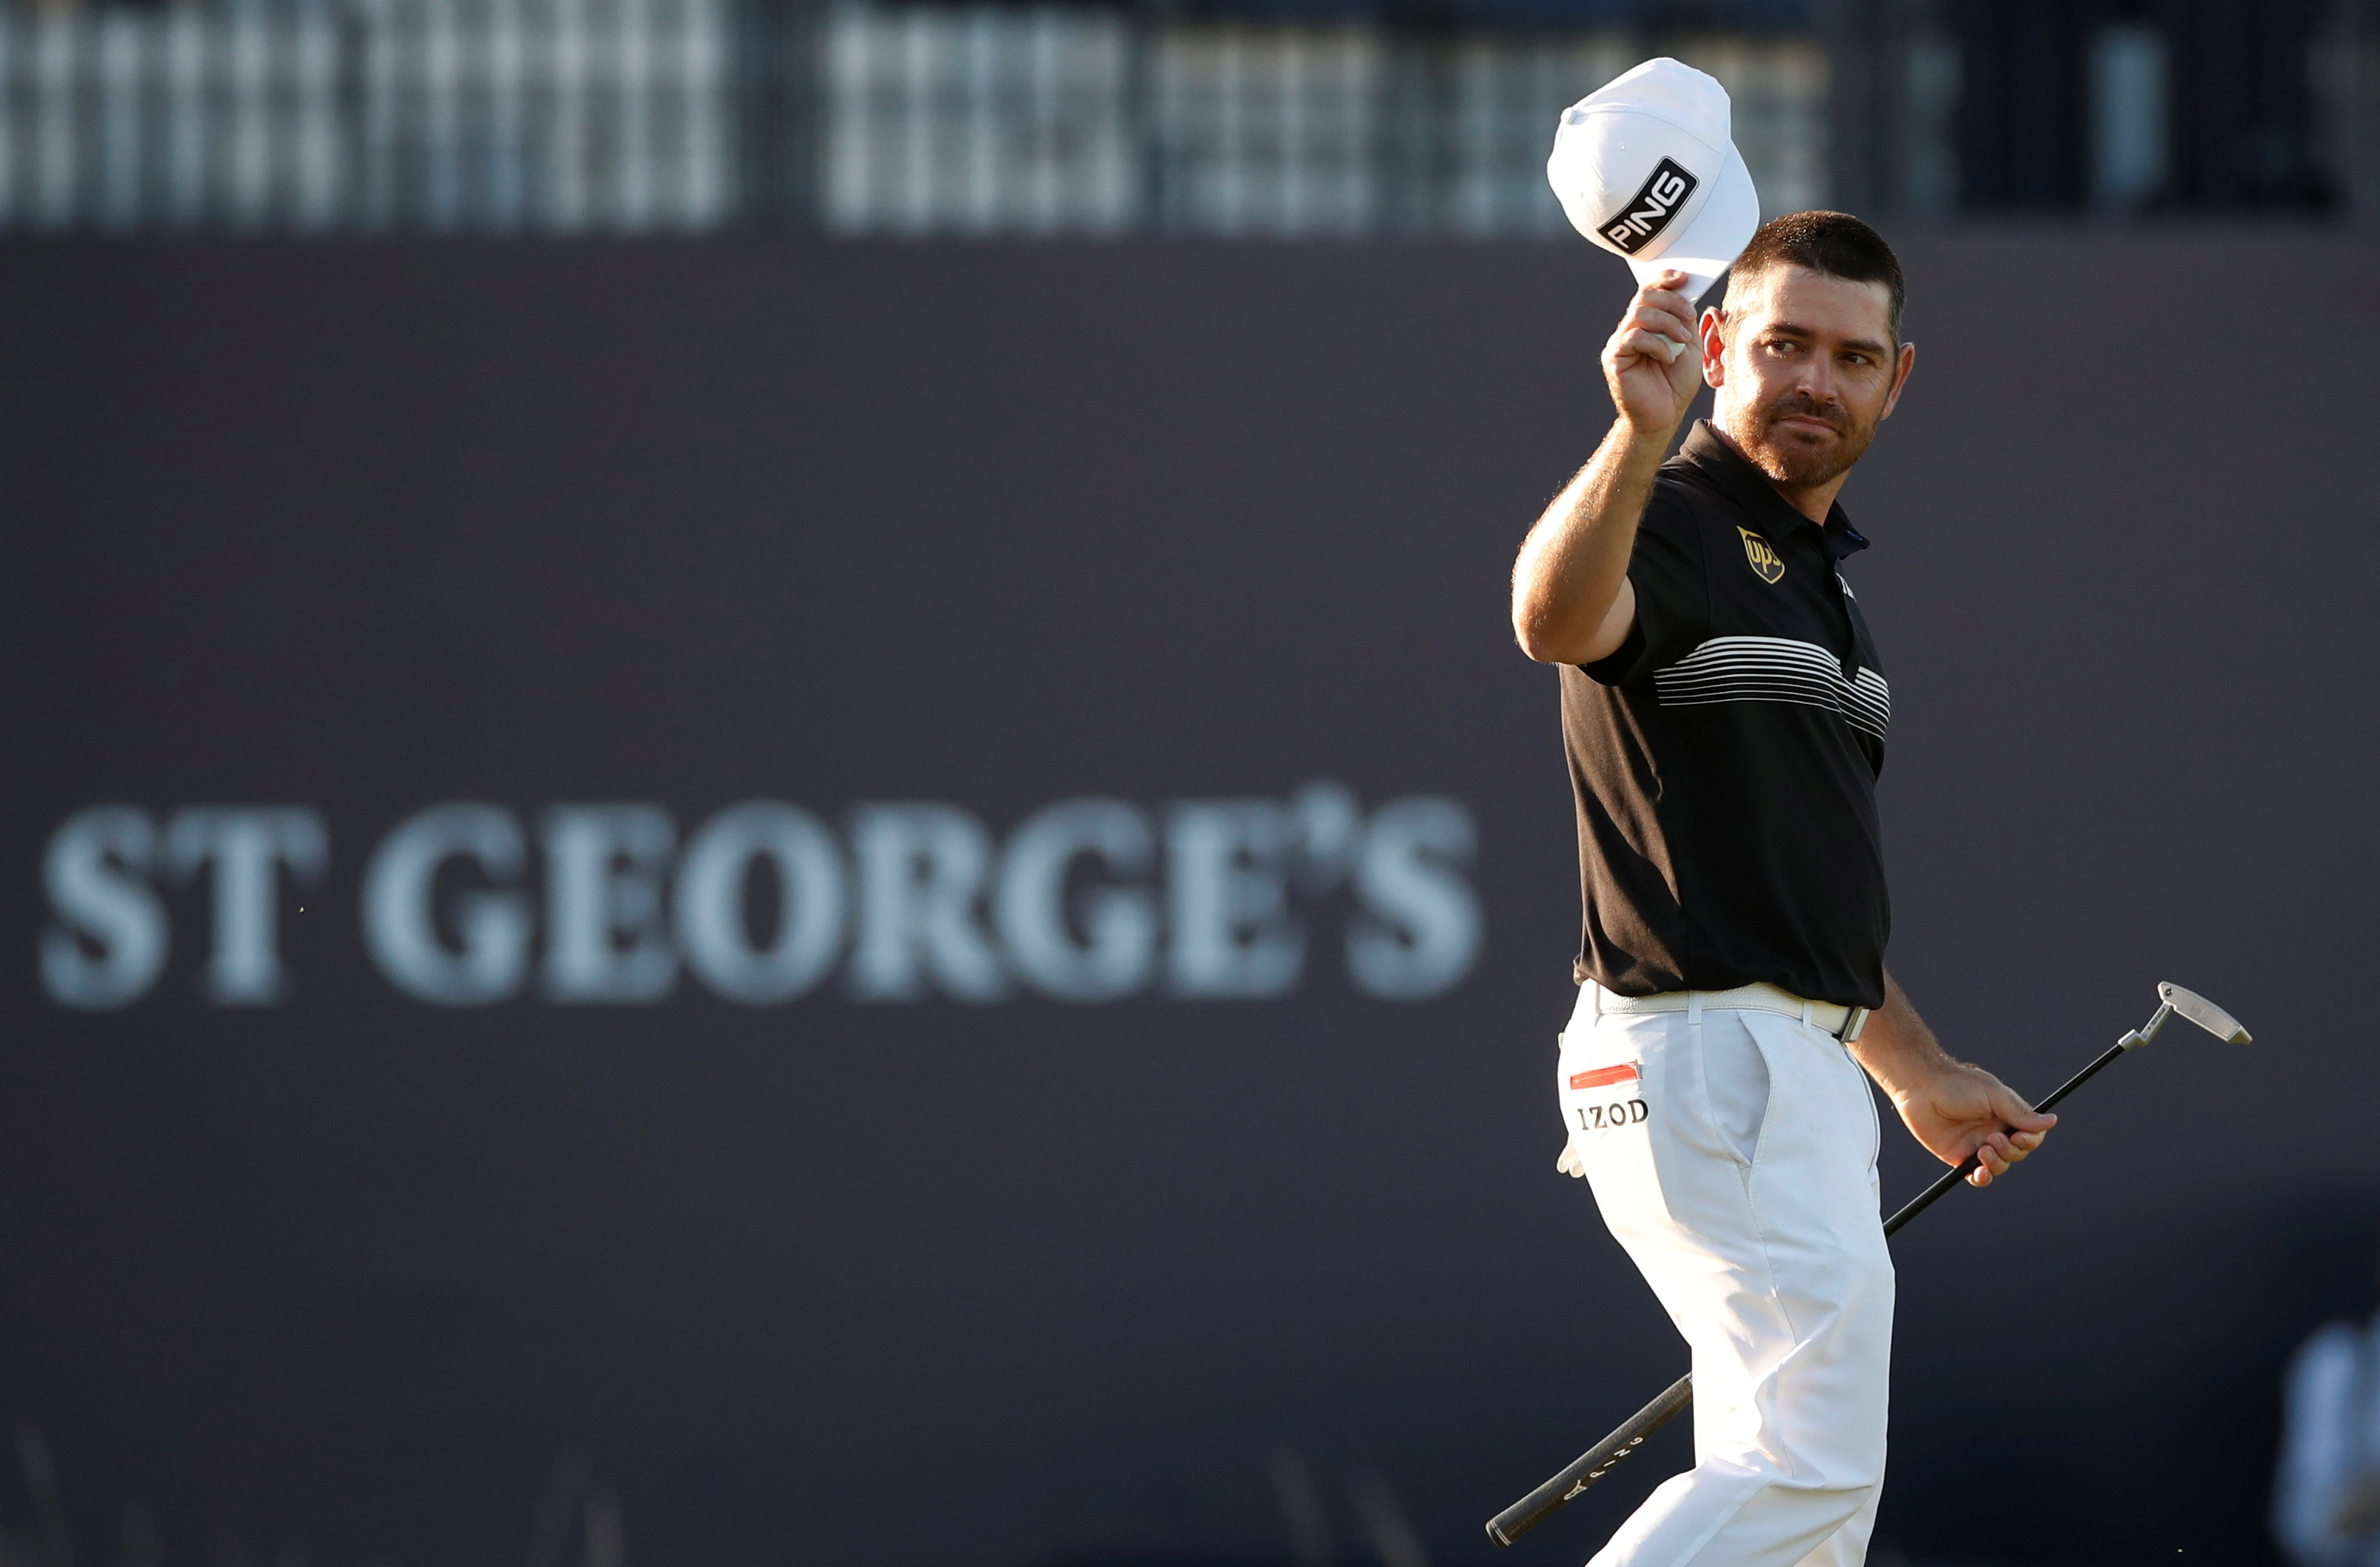 Golf - The 149th Open Championship - Royal St George's, Sandwich, Britain - July 16, 2021 South Africa's Louis Oosthuizen during the second round REUTERS/Paul Childs